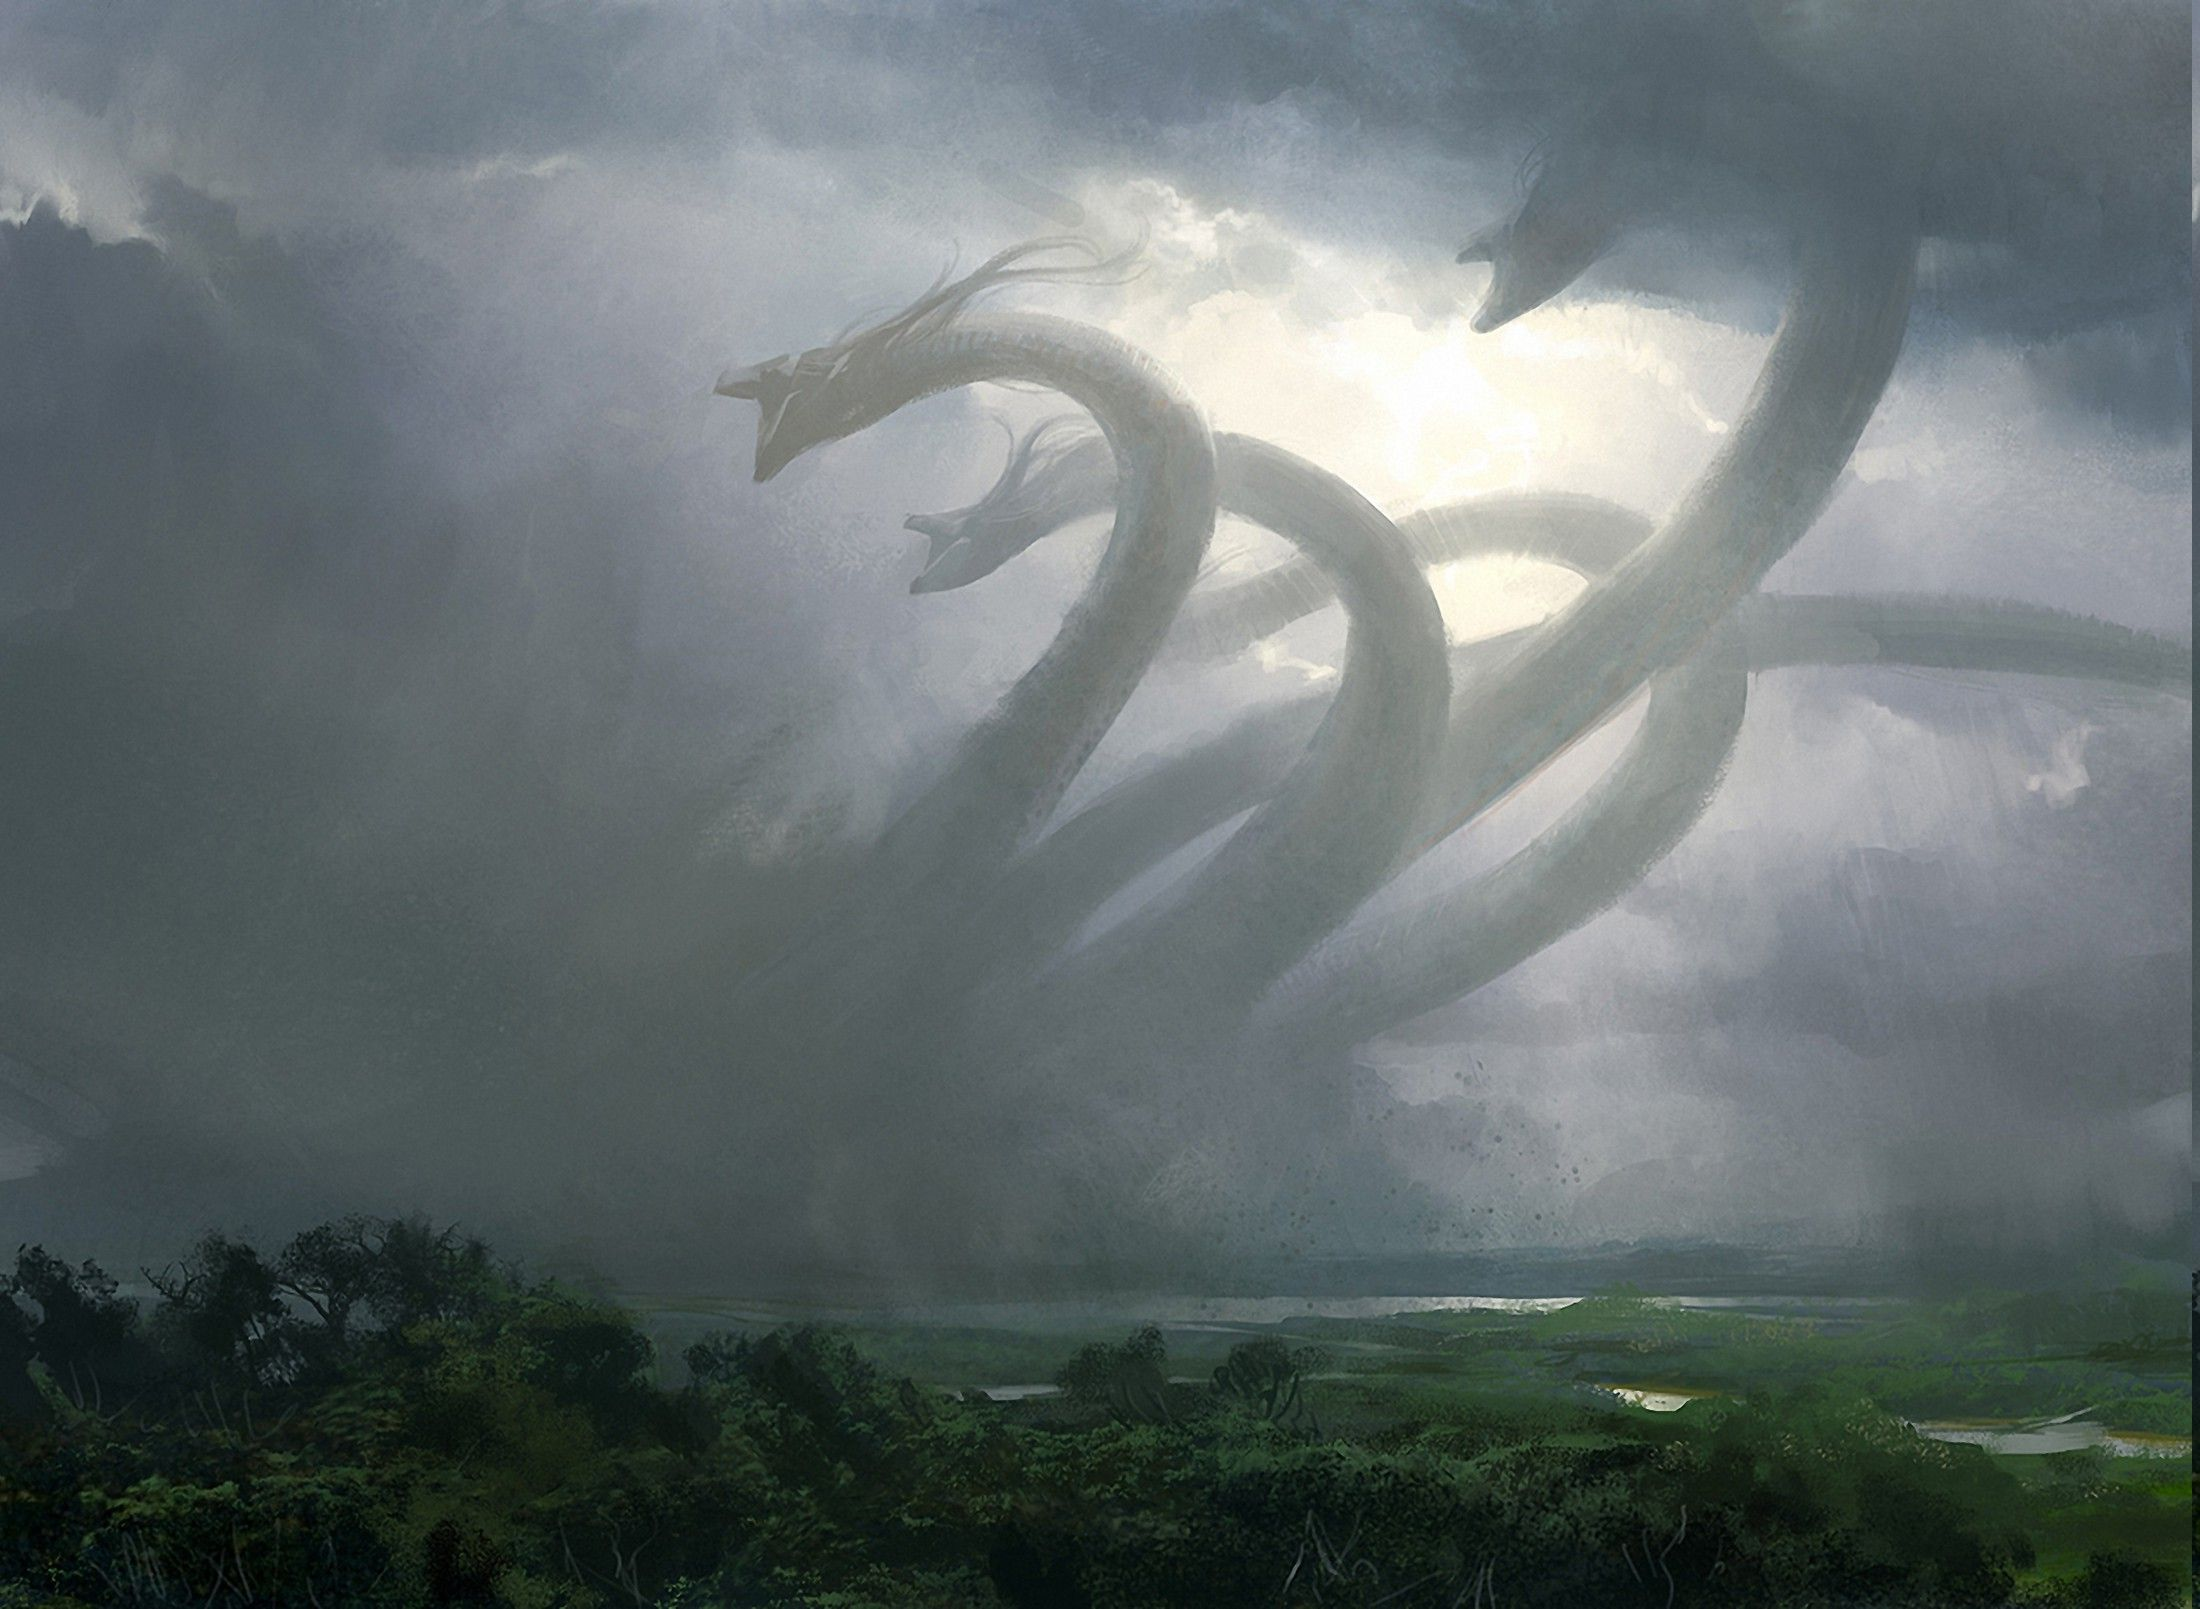 Download Hd Wallpapers Of 37456-fantasy Art, Hydra